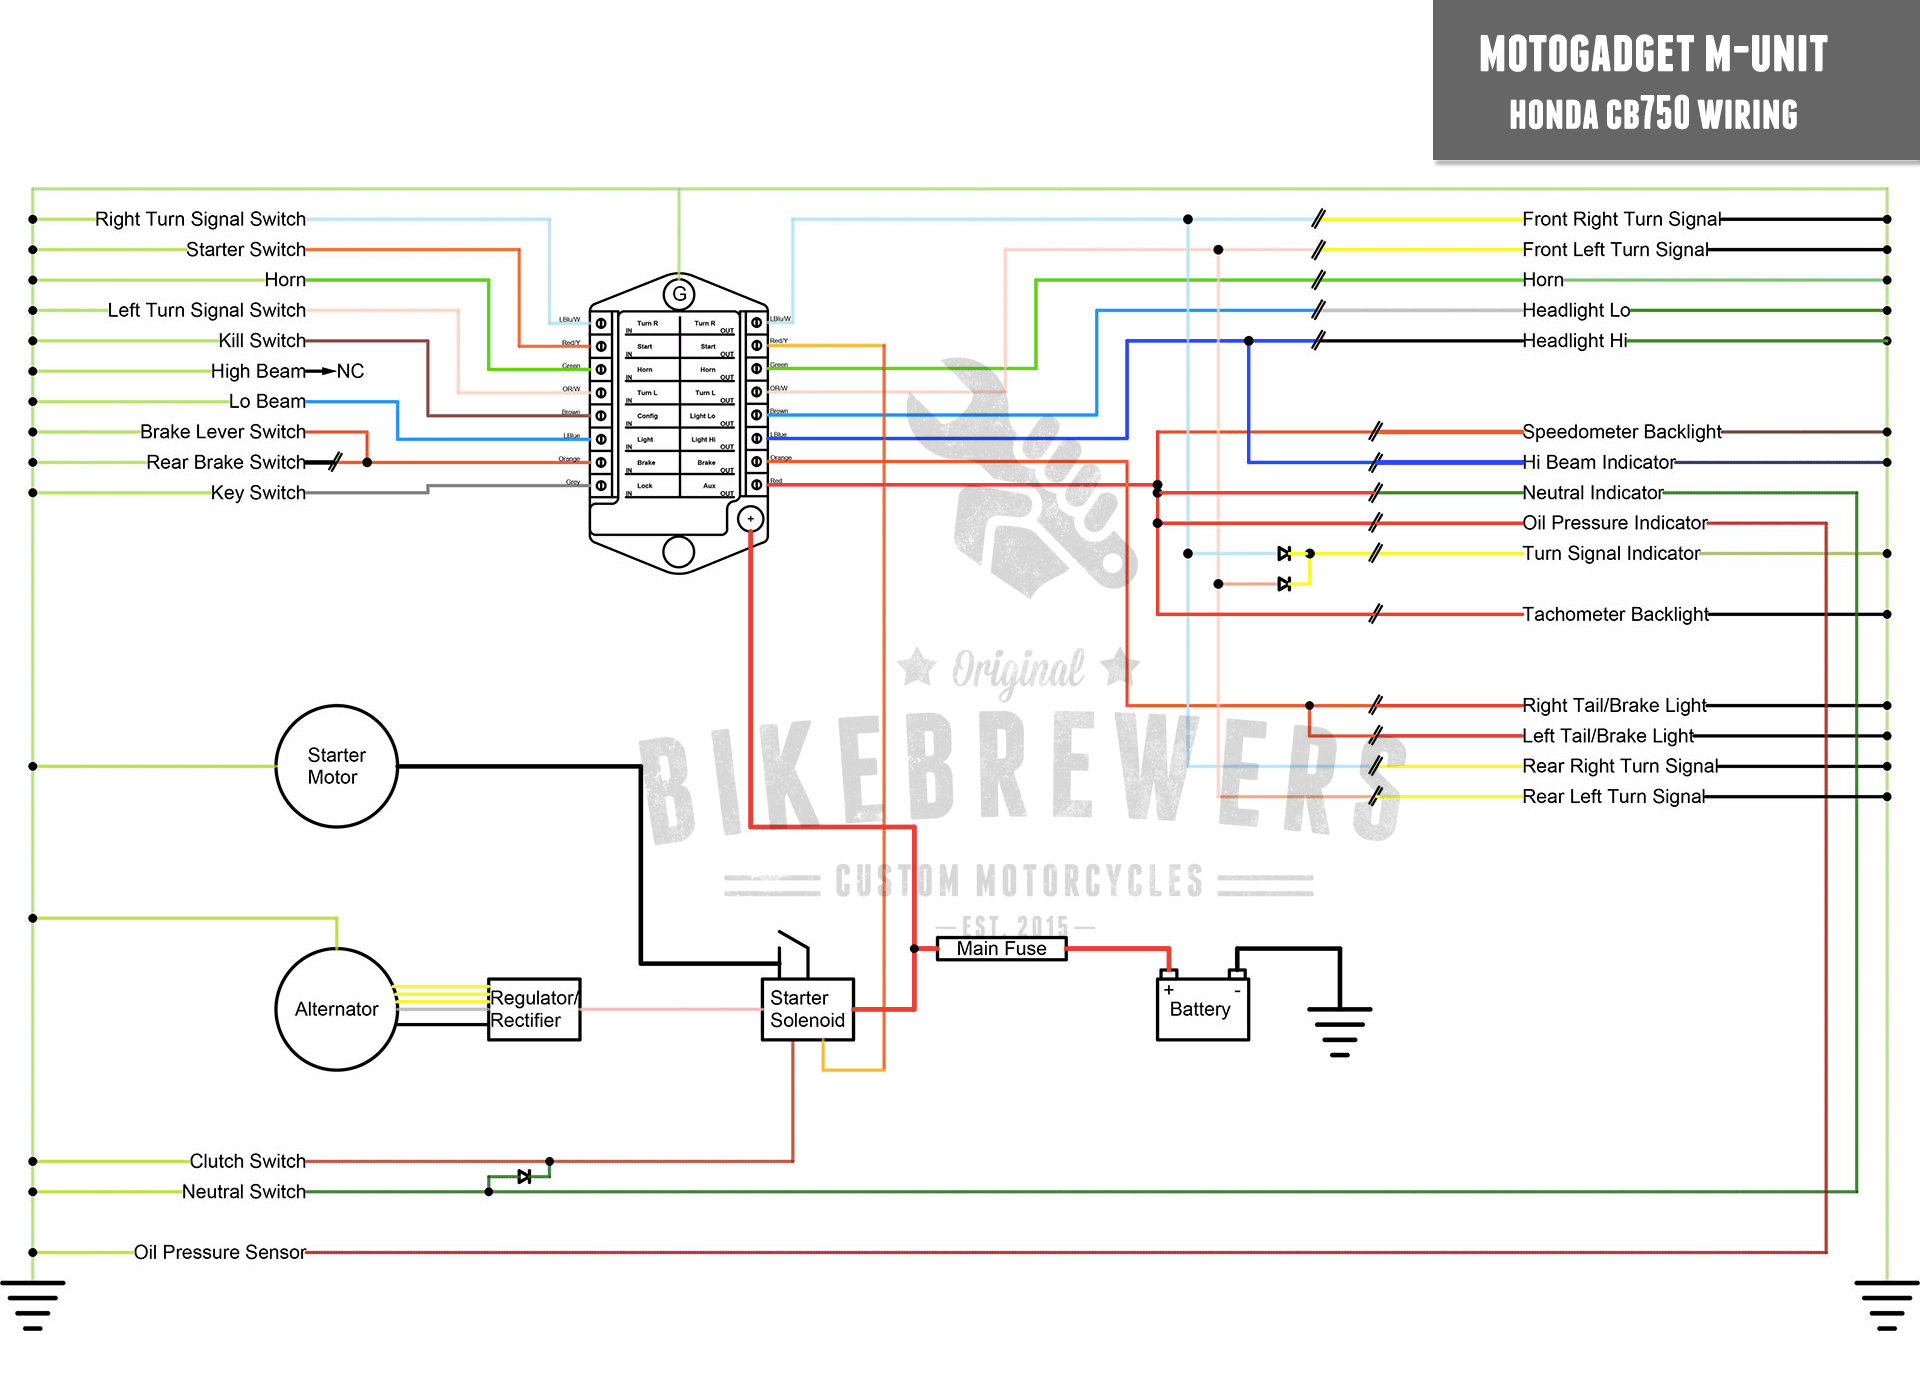 MotoGadget Wiring Honda CB750 motogadget m unit wiring bikebrewers com ural wiring diagram at mifinder.co